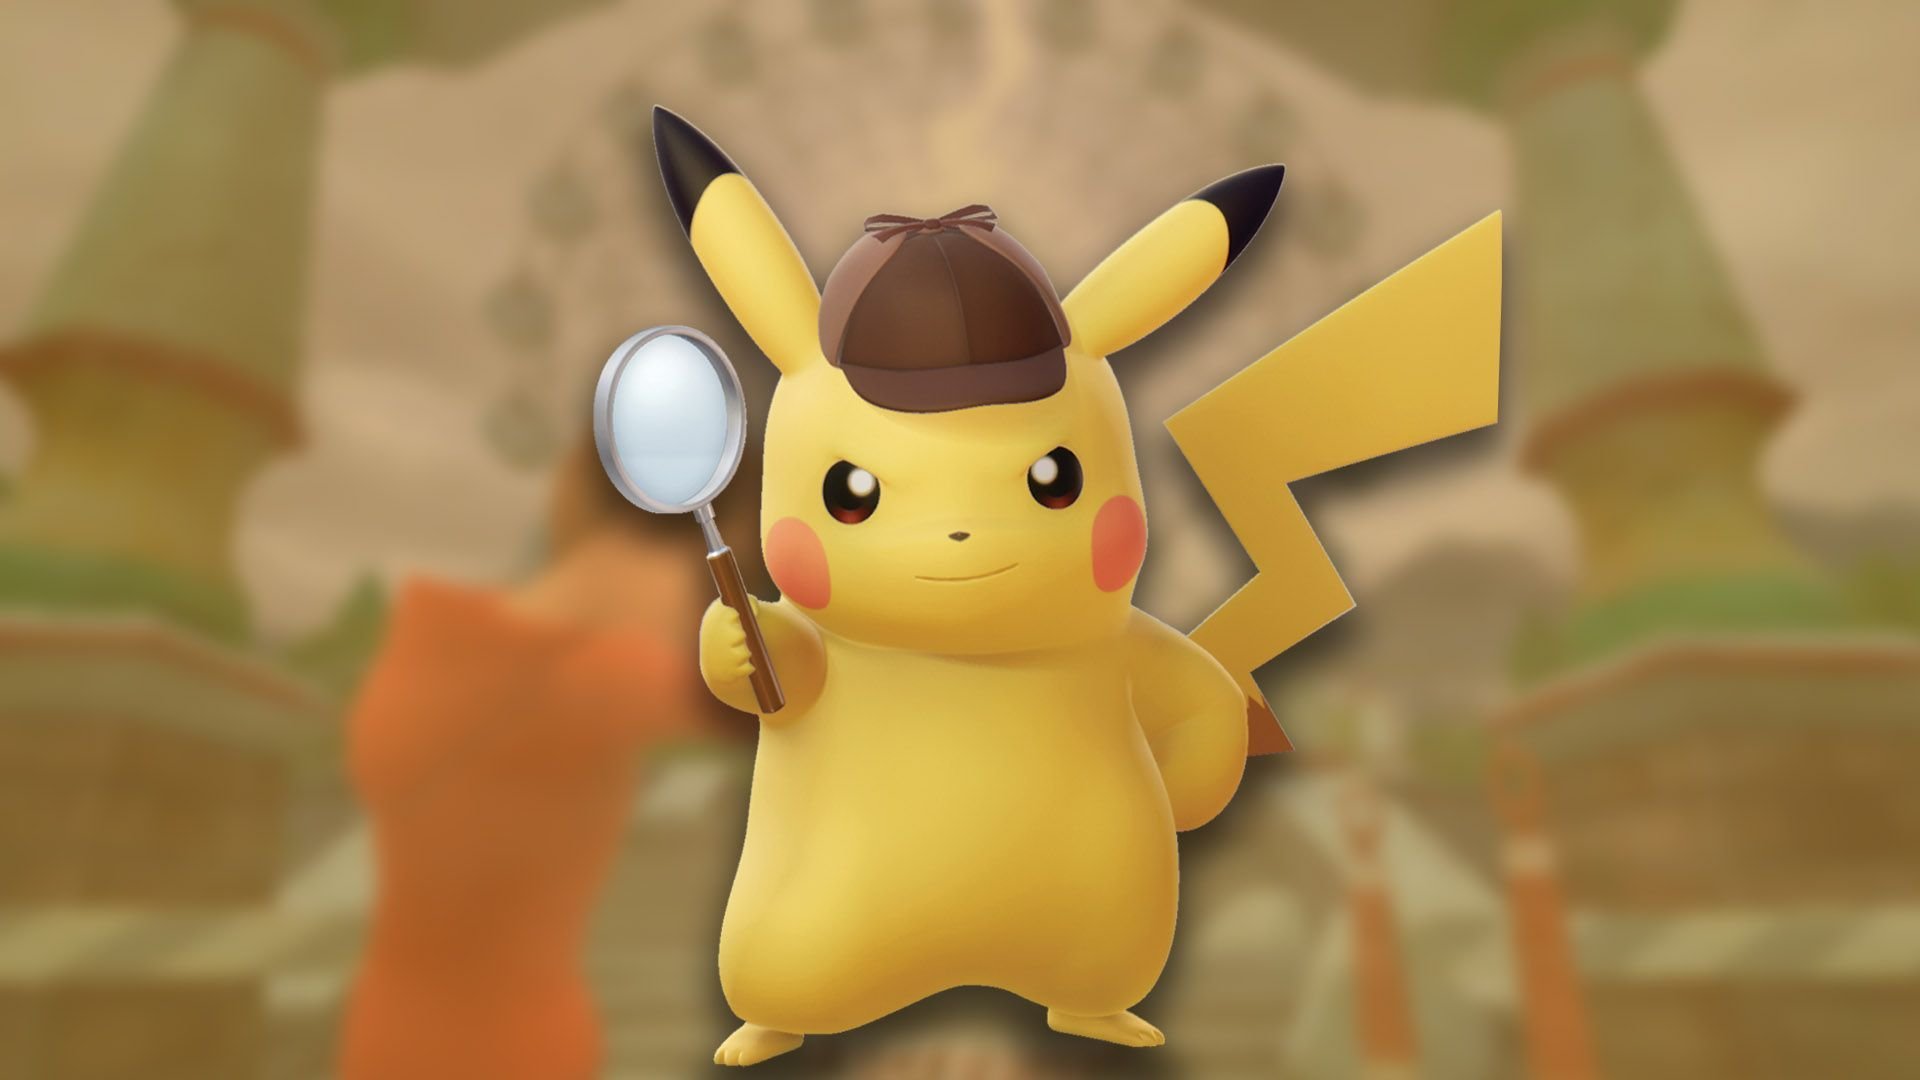 Detective Pikachu Wallpapers Top Free Detective Pikachu